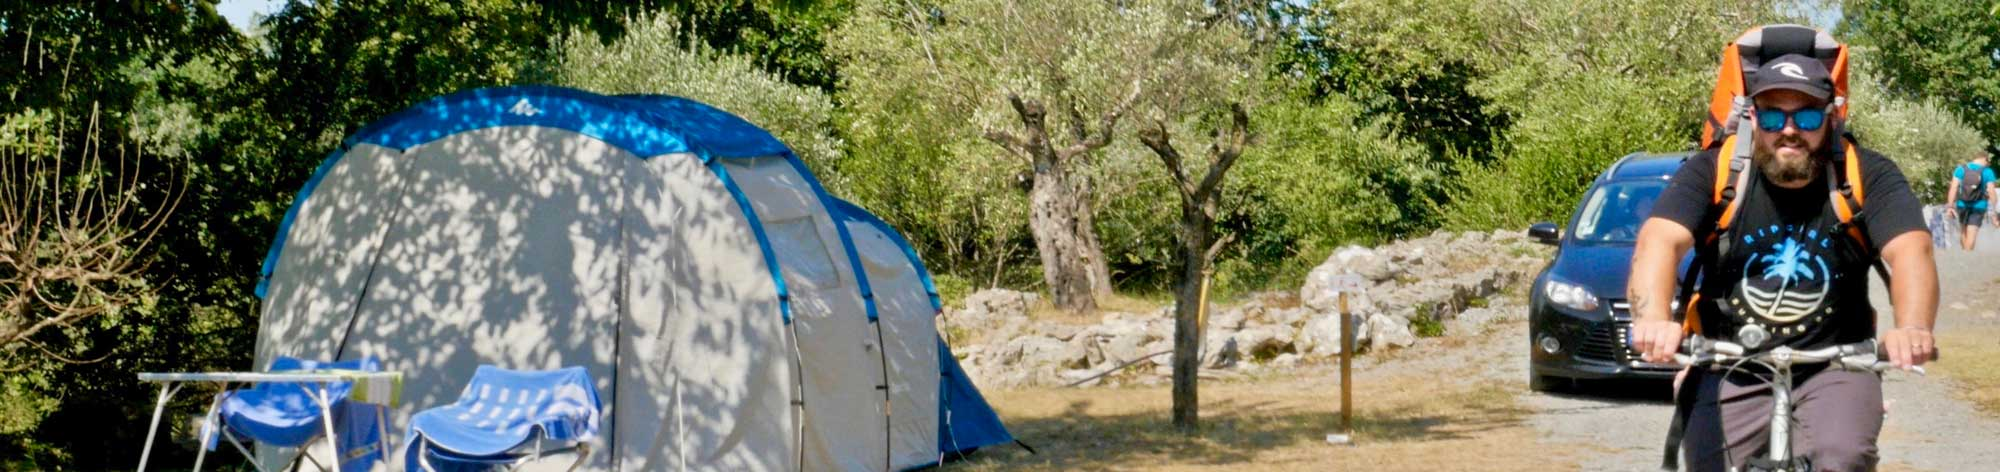 emplacements camping ruoms vallon pont arc ardeche